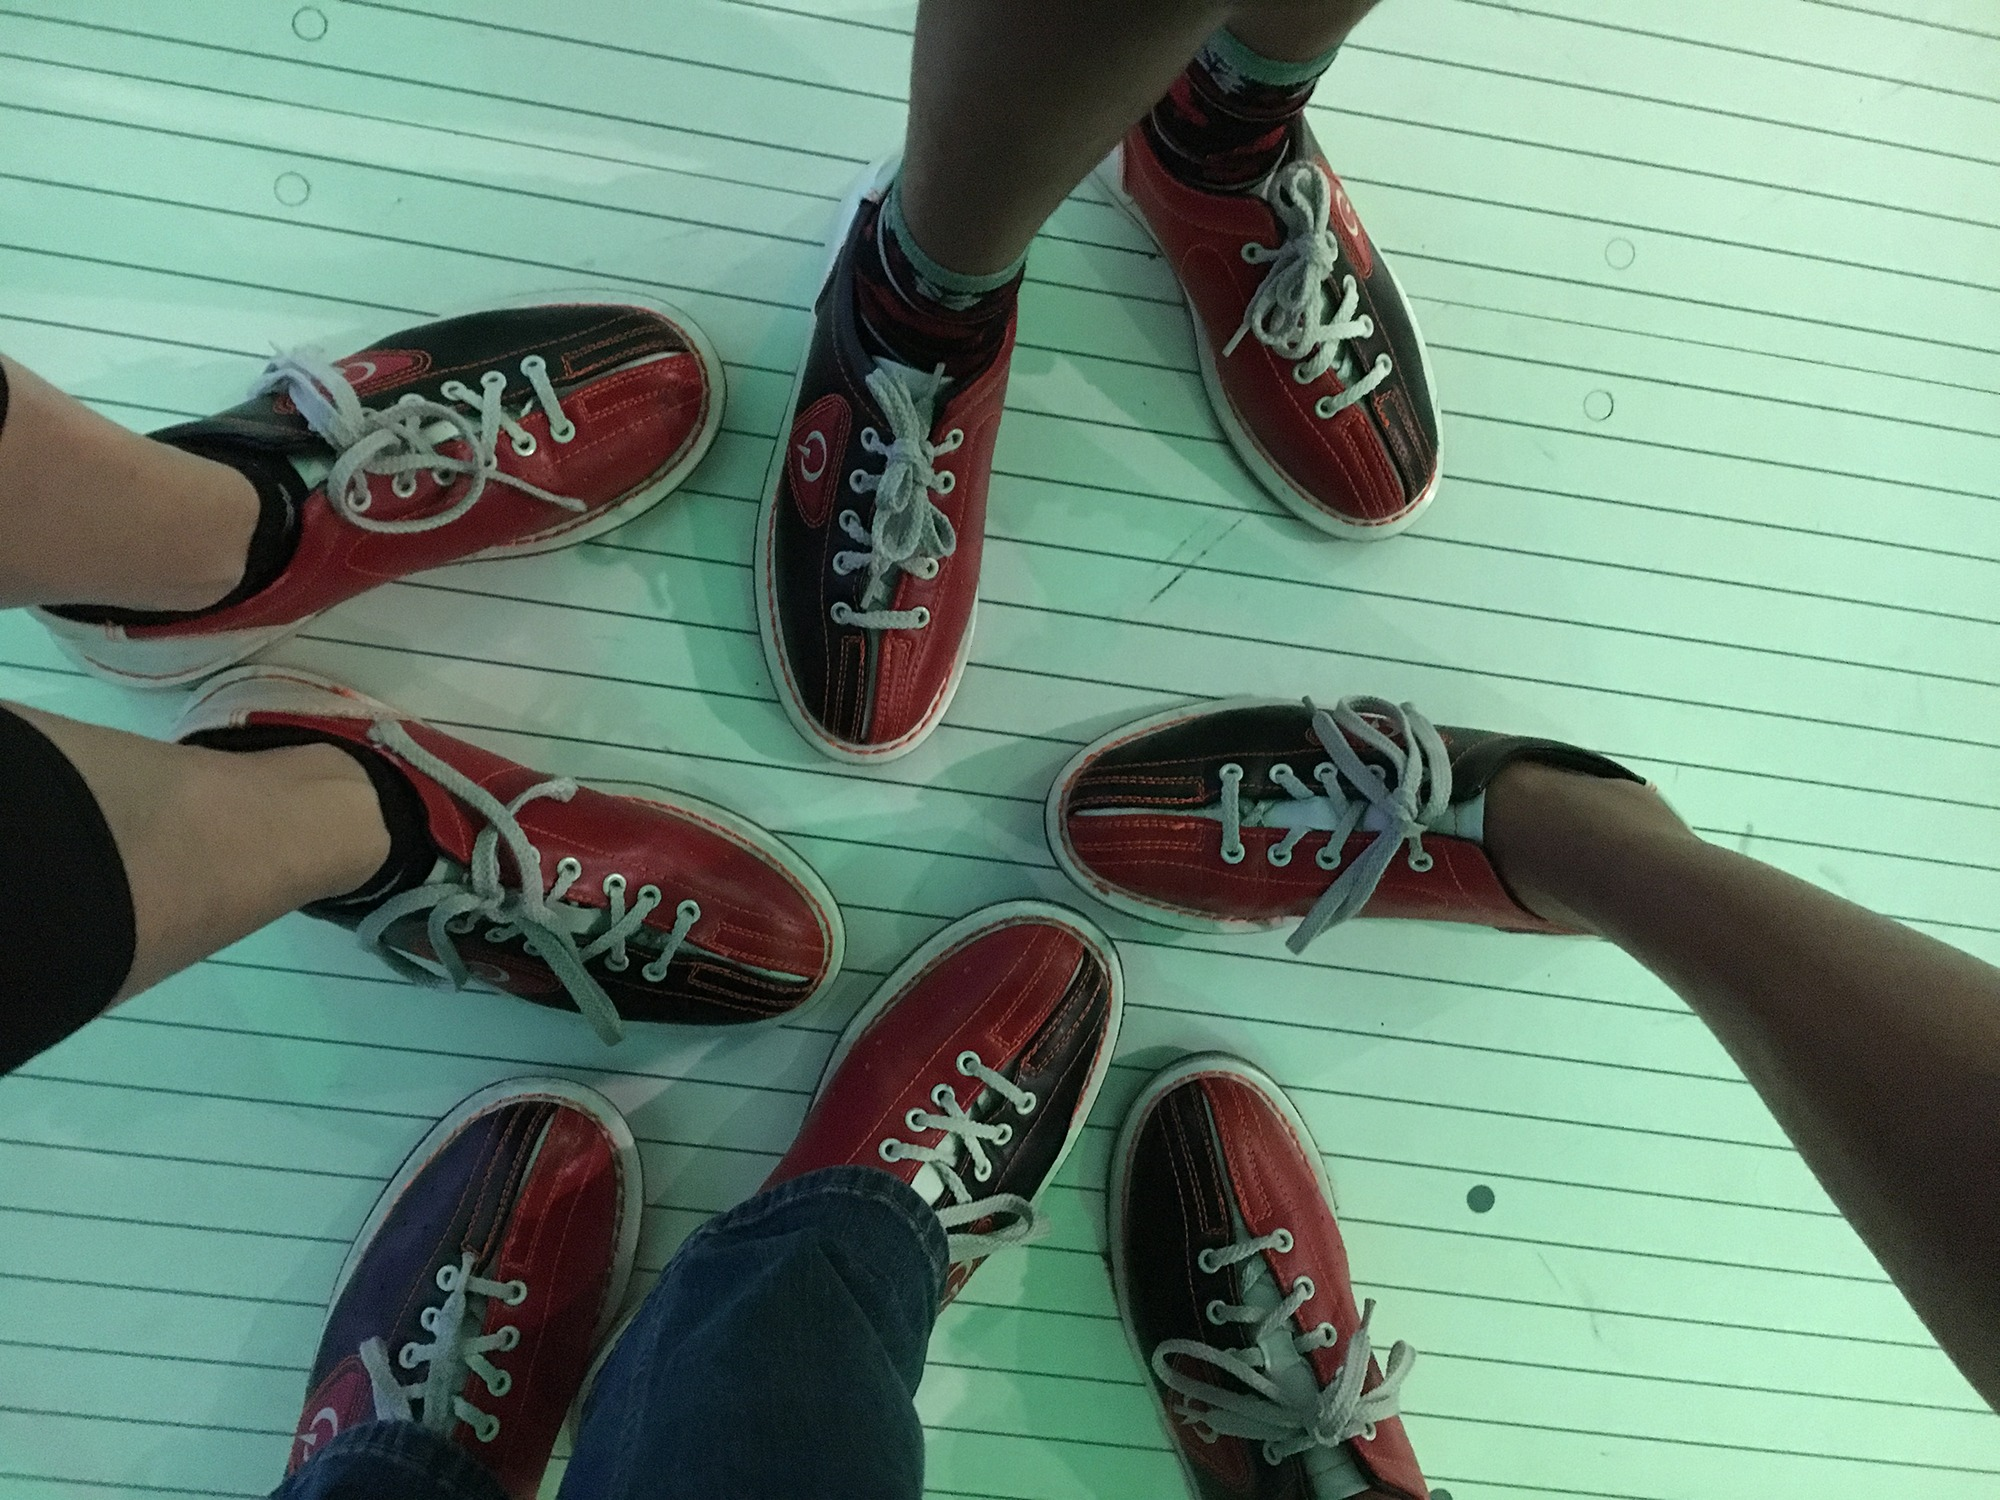 Comfort bowling shoes at Andretti's in orlando